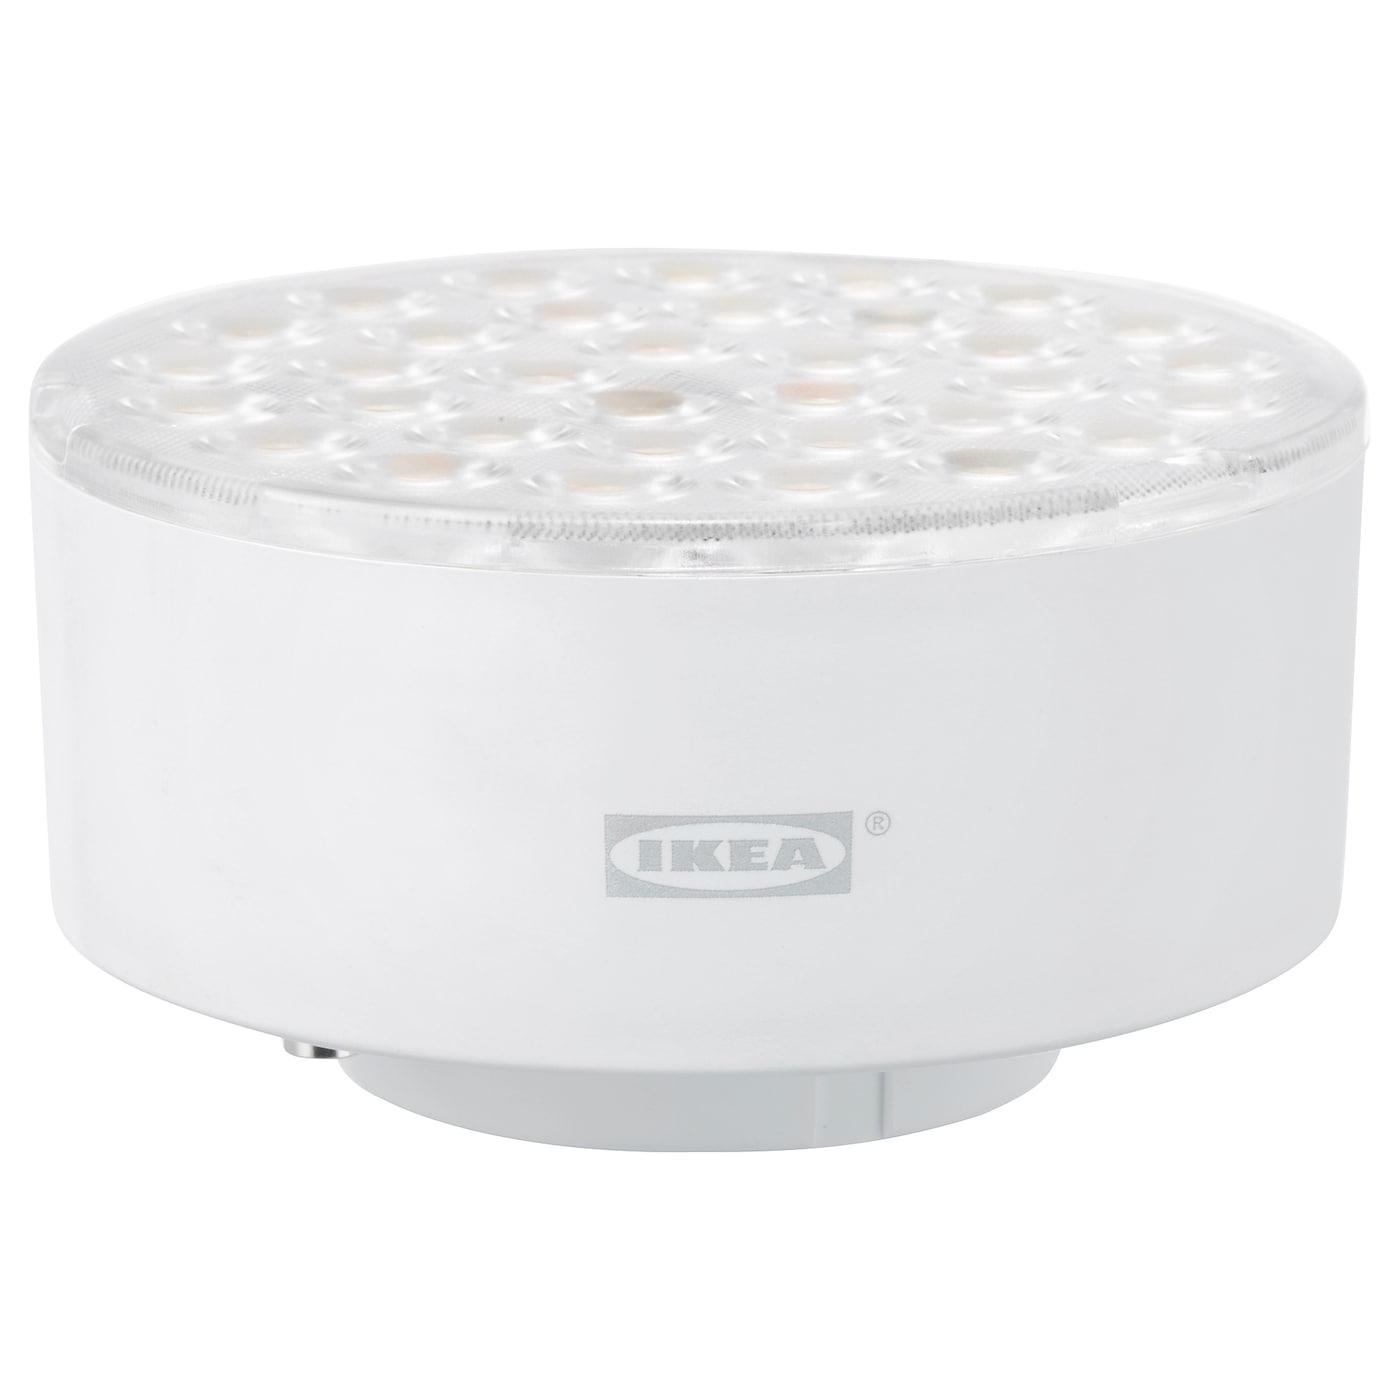 ledare led lamp gx53 1000 lumen warm dimmen verstelbare stralingshoek ikea. Black Bedroom Furniture Sets. Home Design Ideas